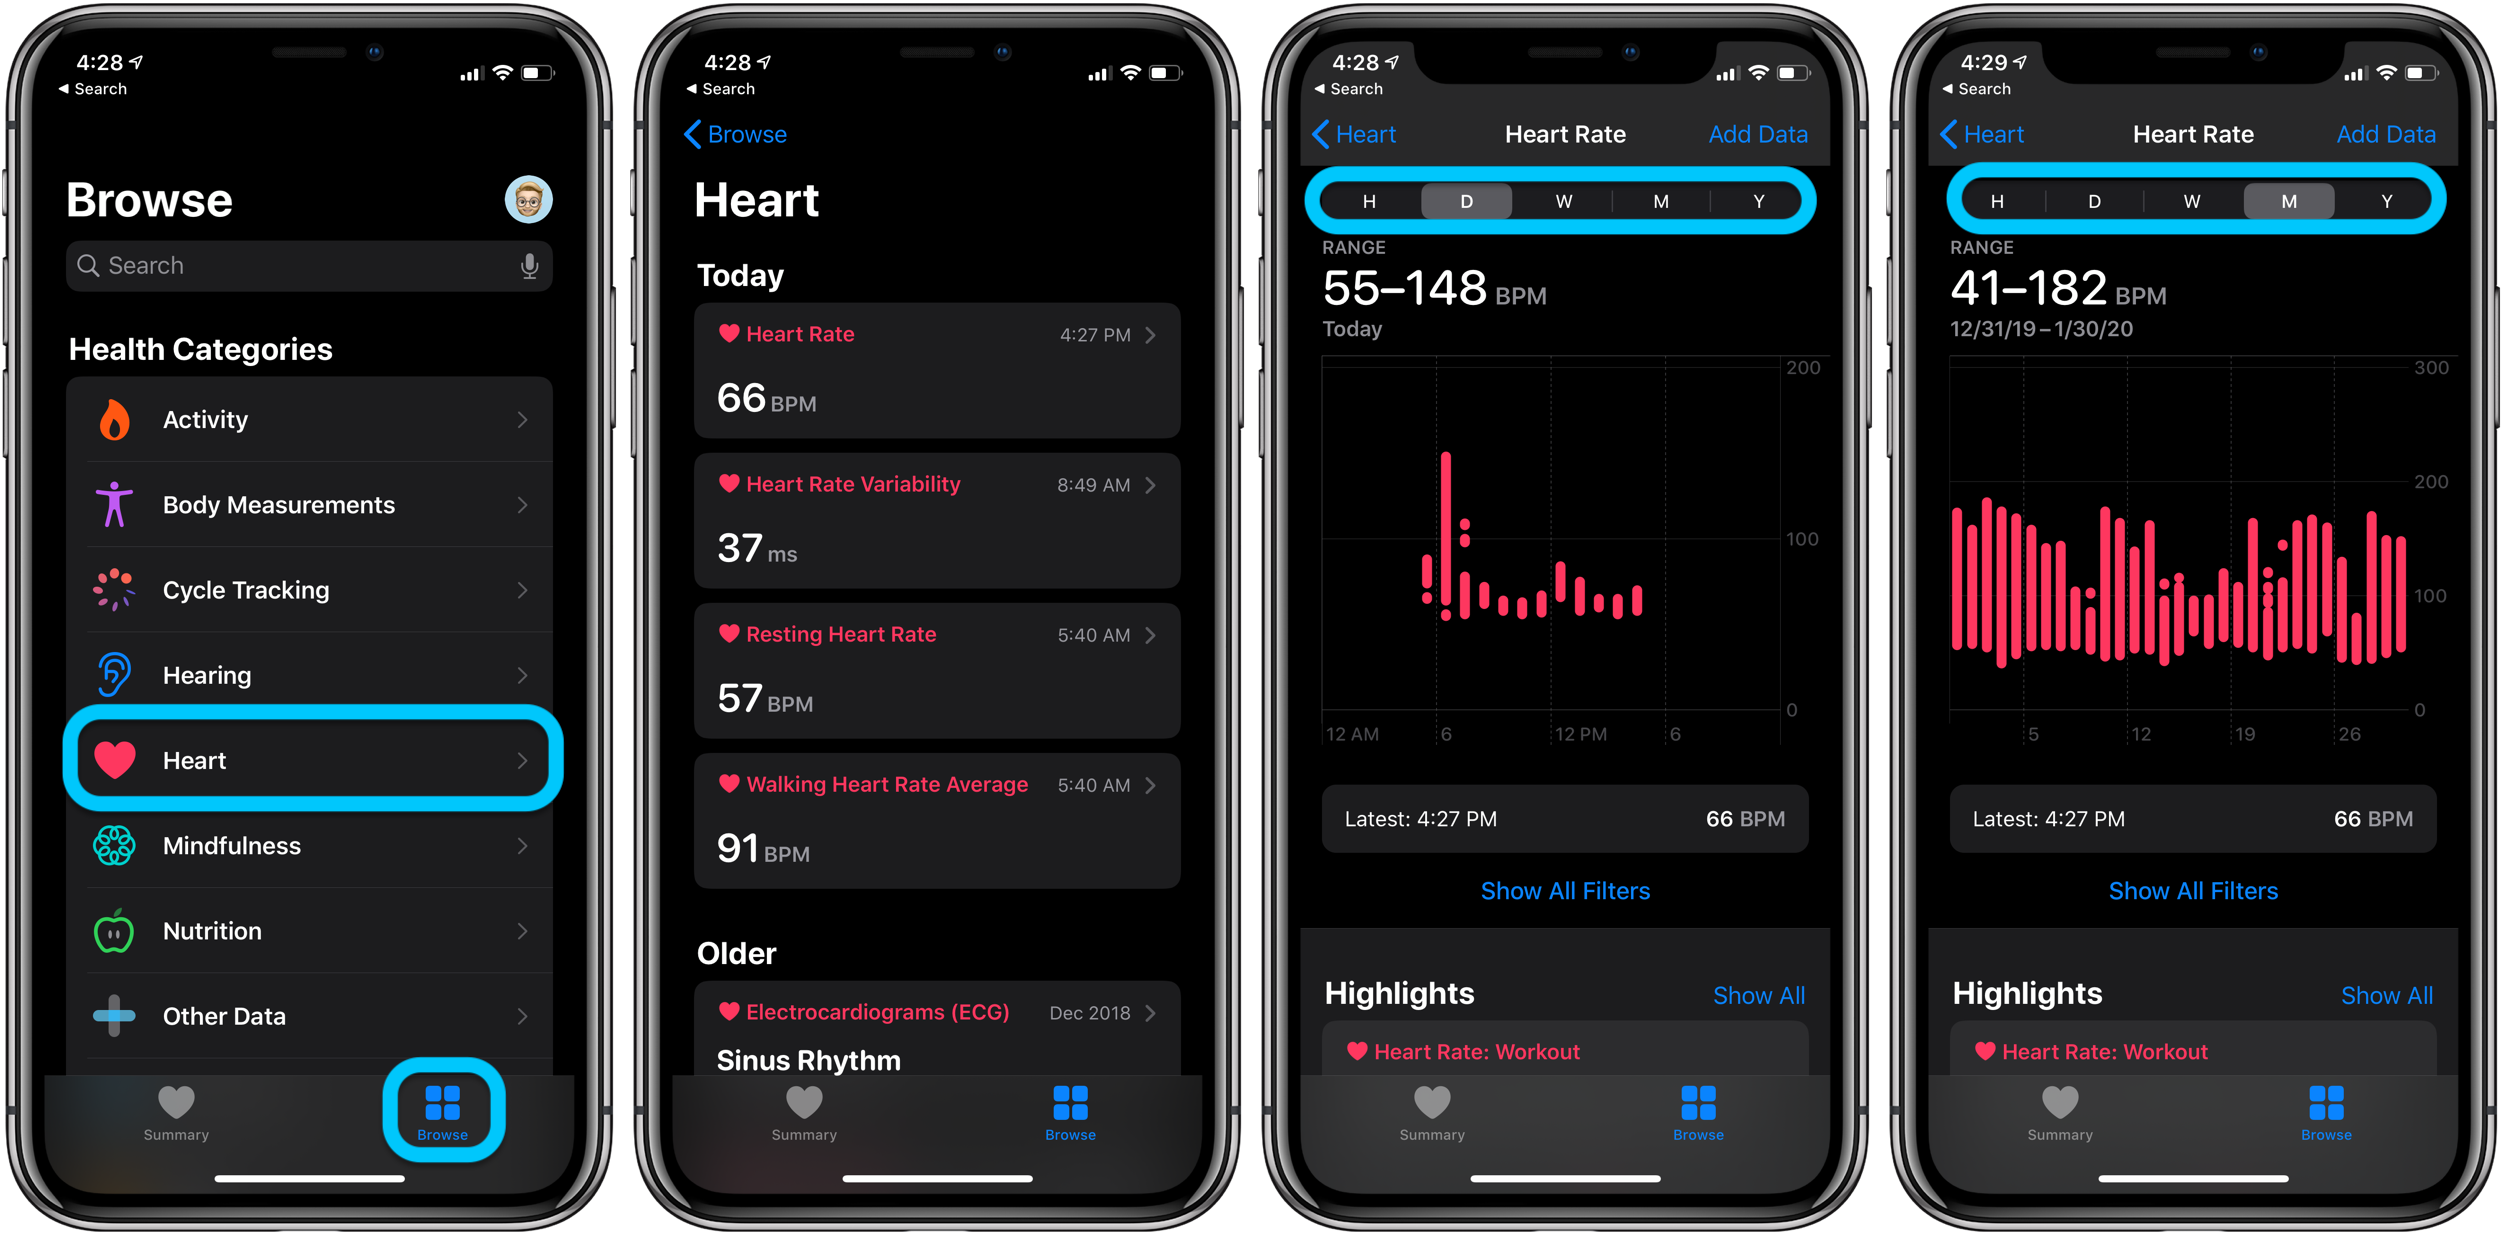 How to see Apple Watch heart rate history - on iPhone